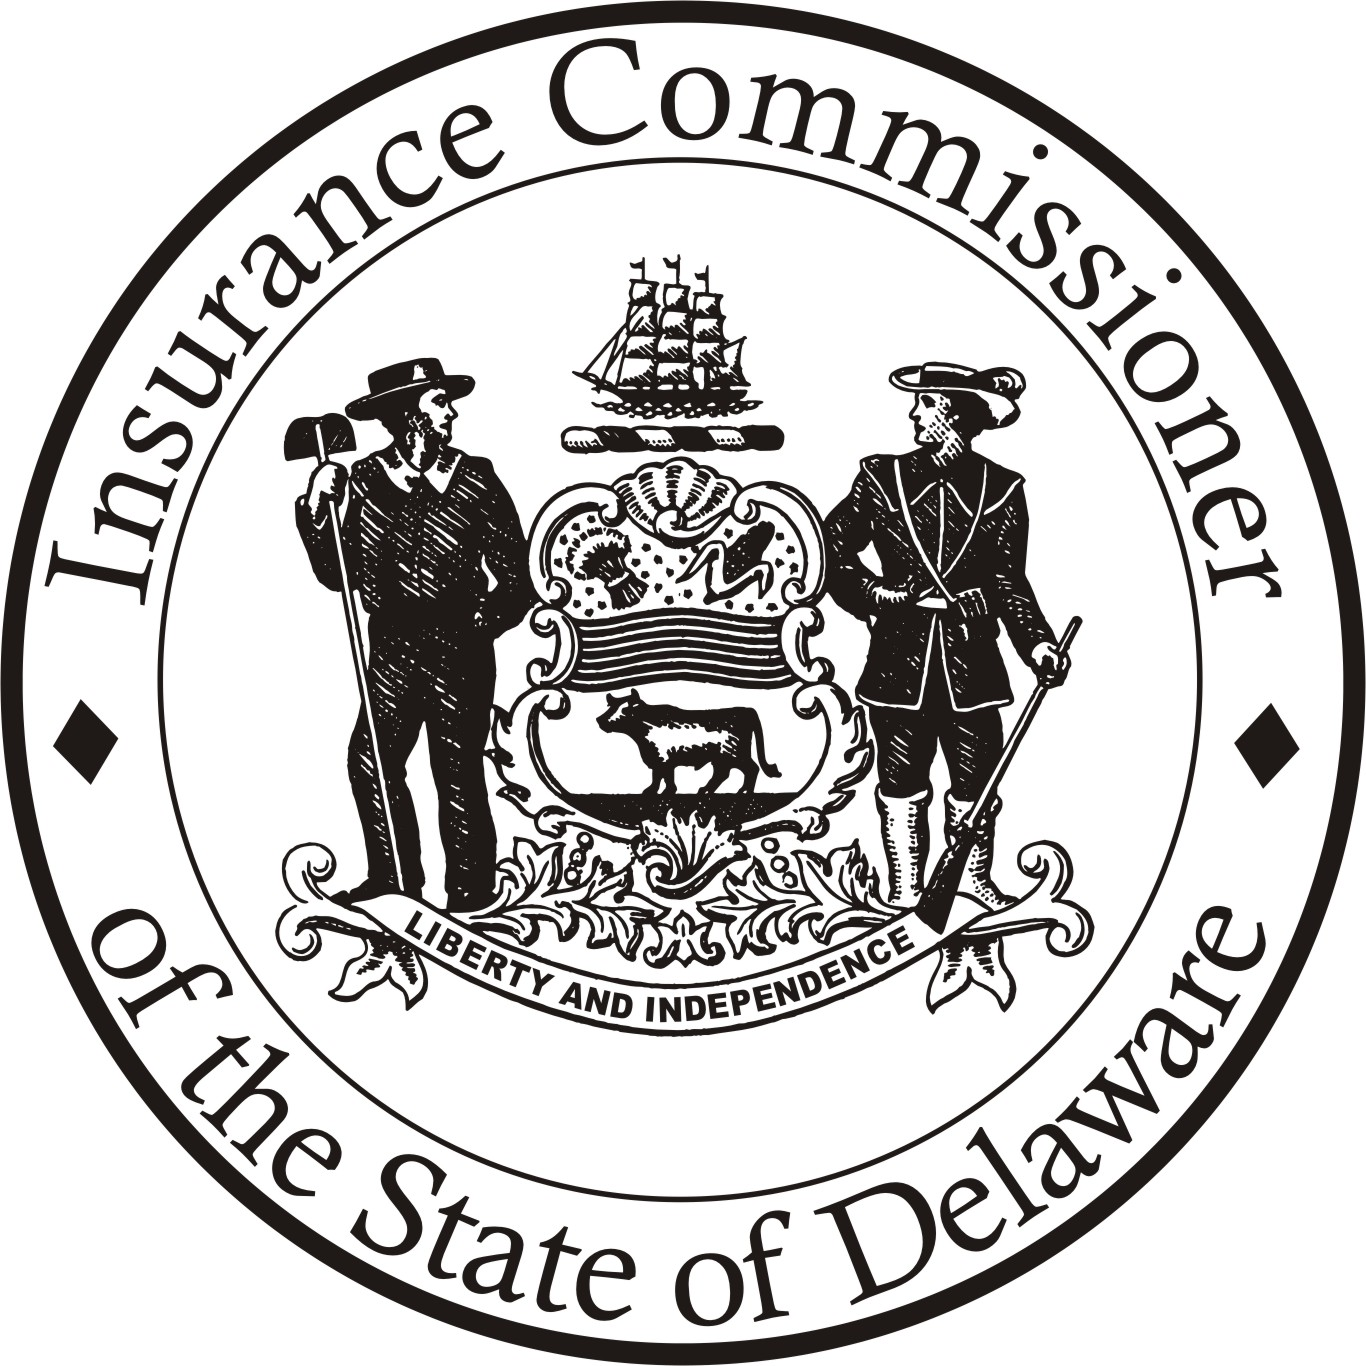 Picture of the Seal of the Delaware State Insurance Commissioner